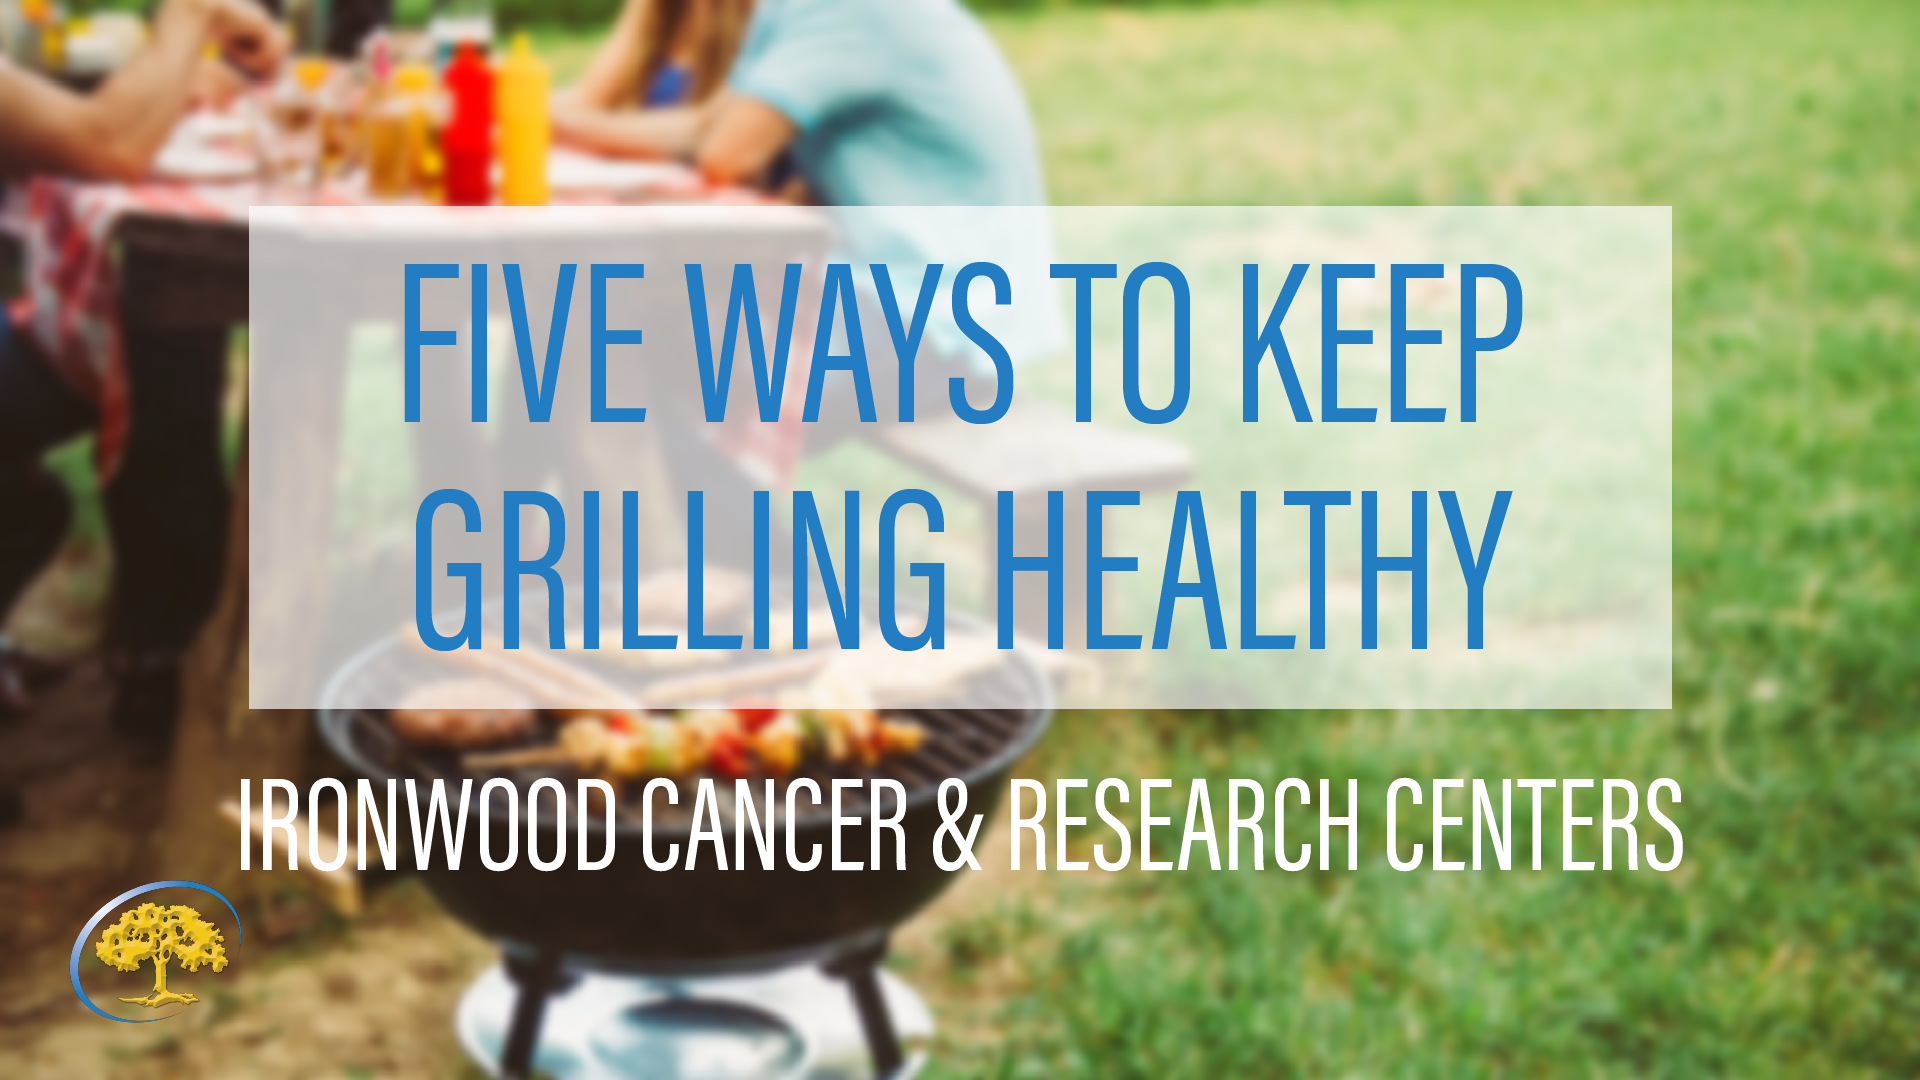 Five ways to keep grilling healthy